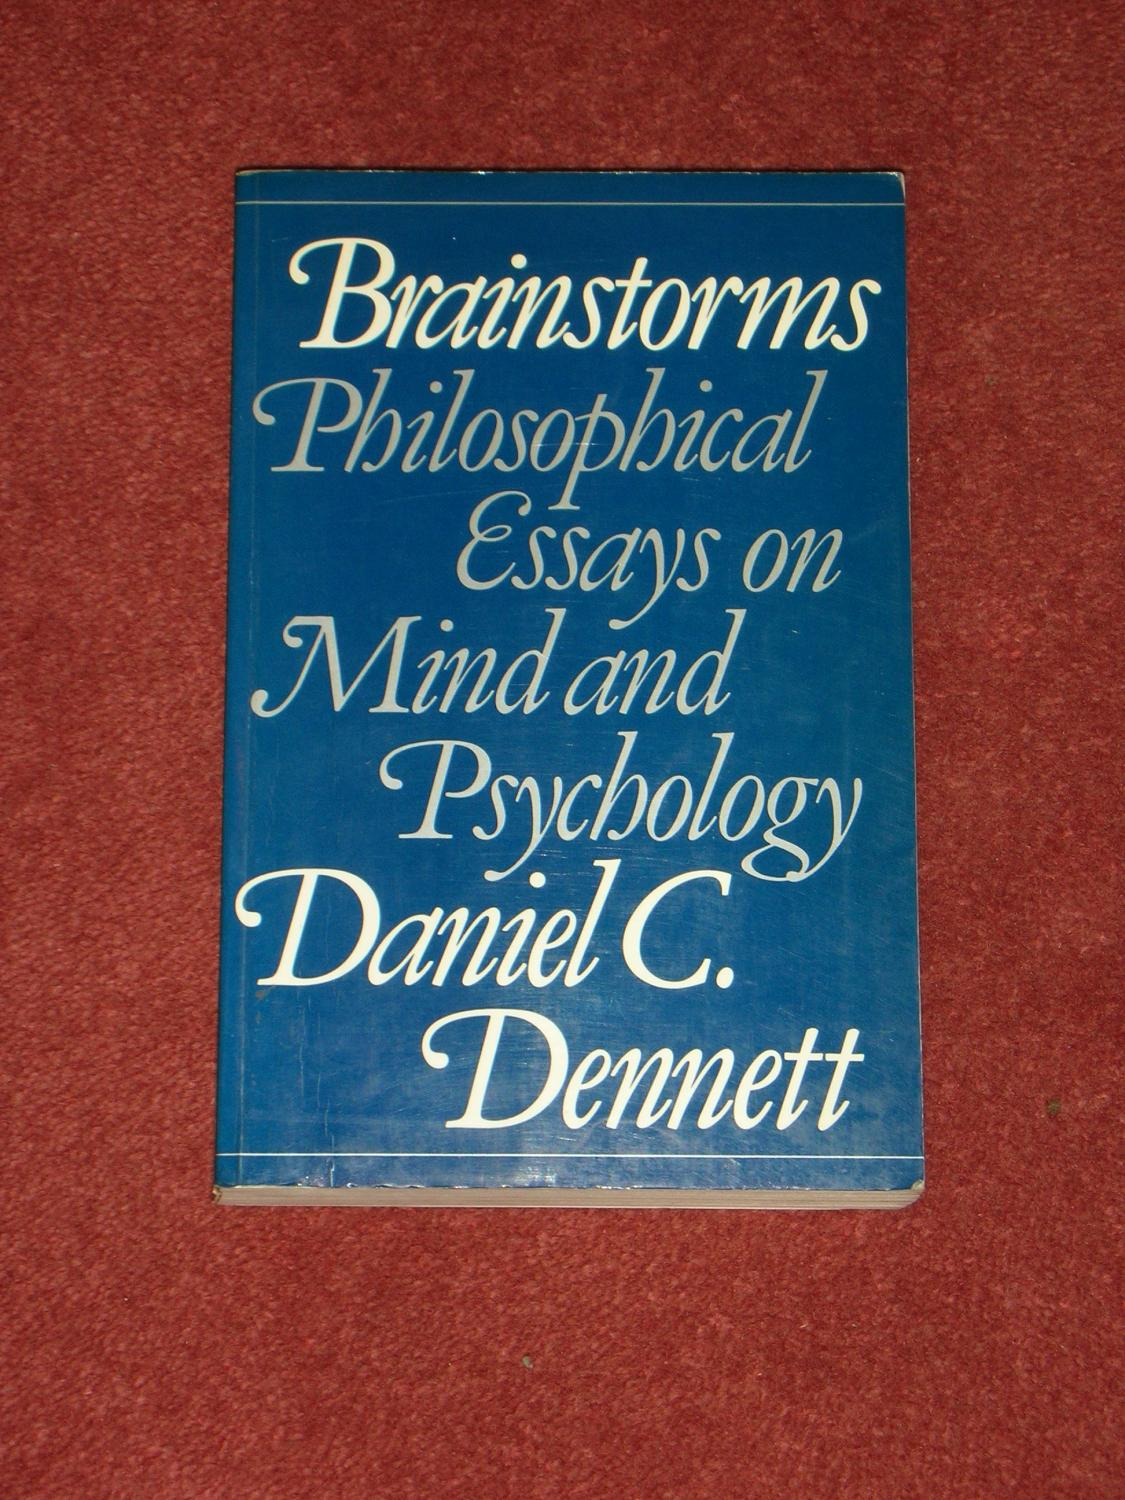 brainstorms philosophical essays on mind and psychology